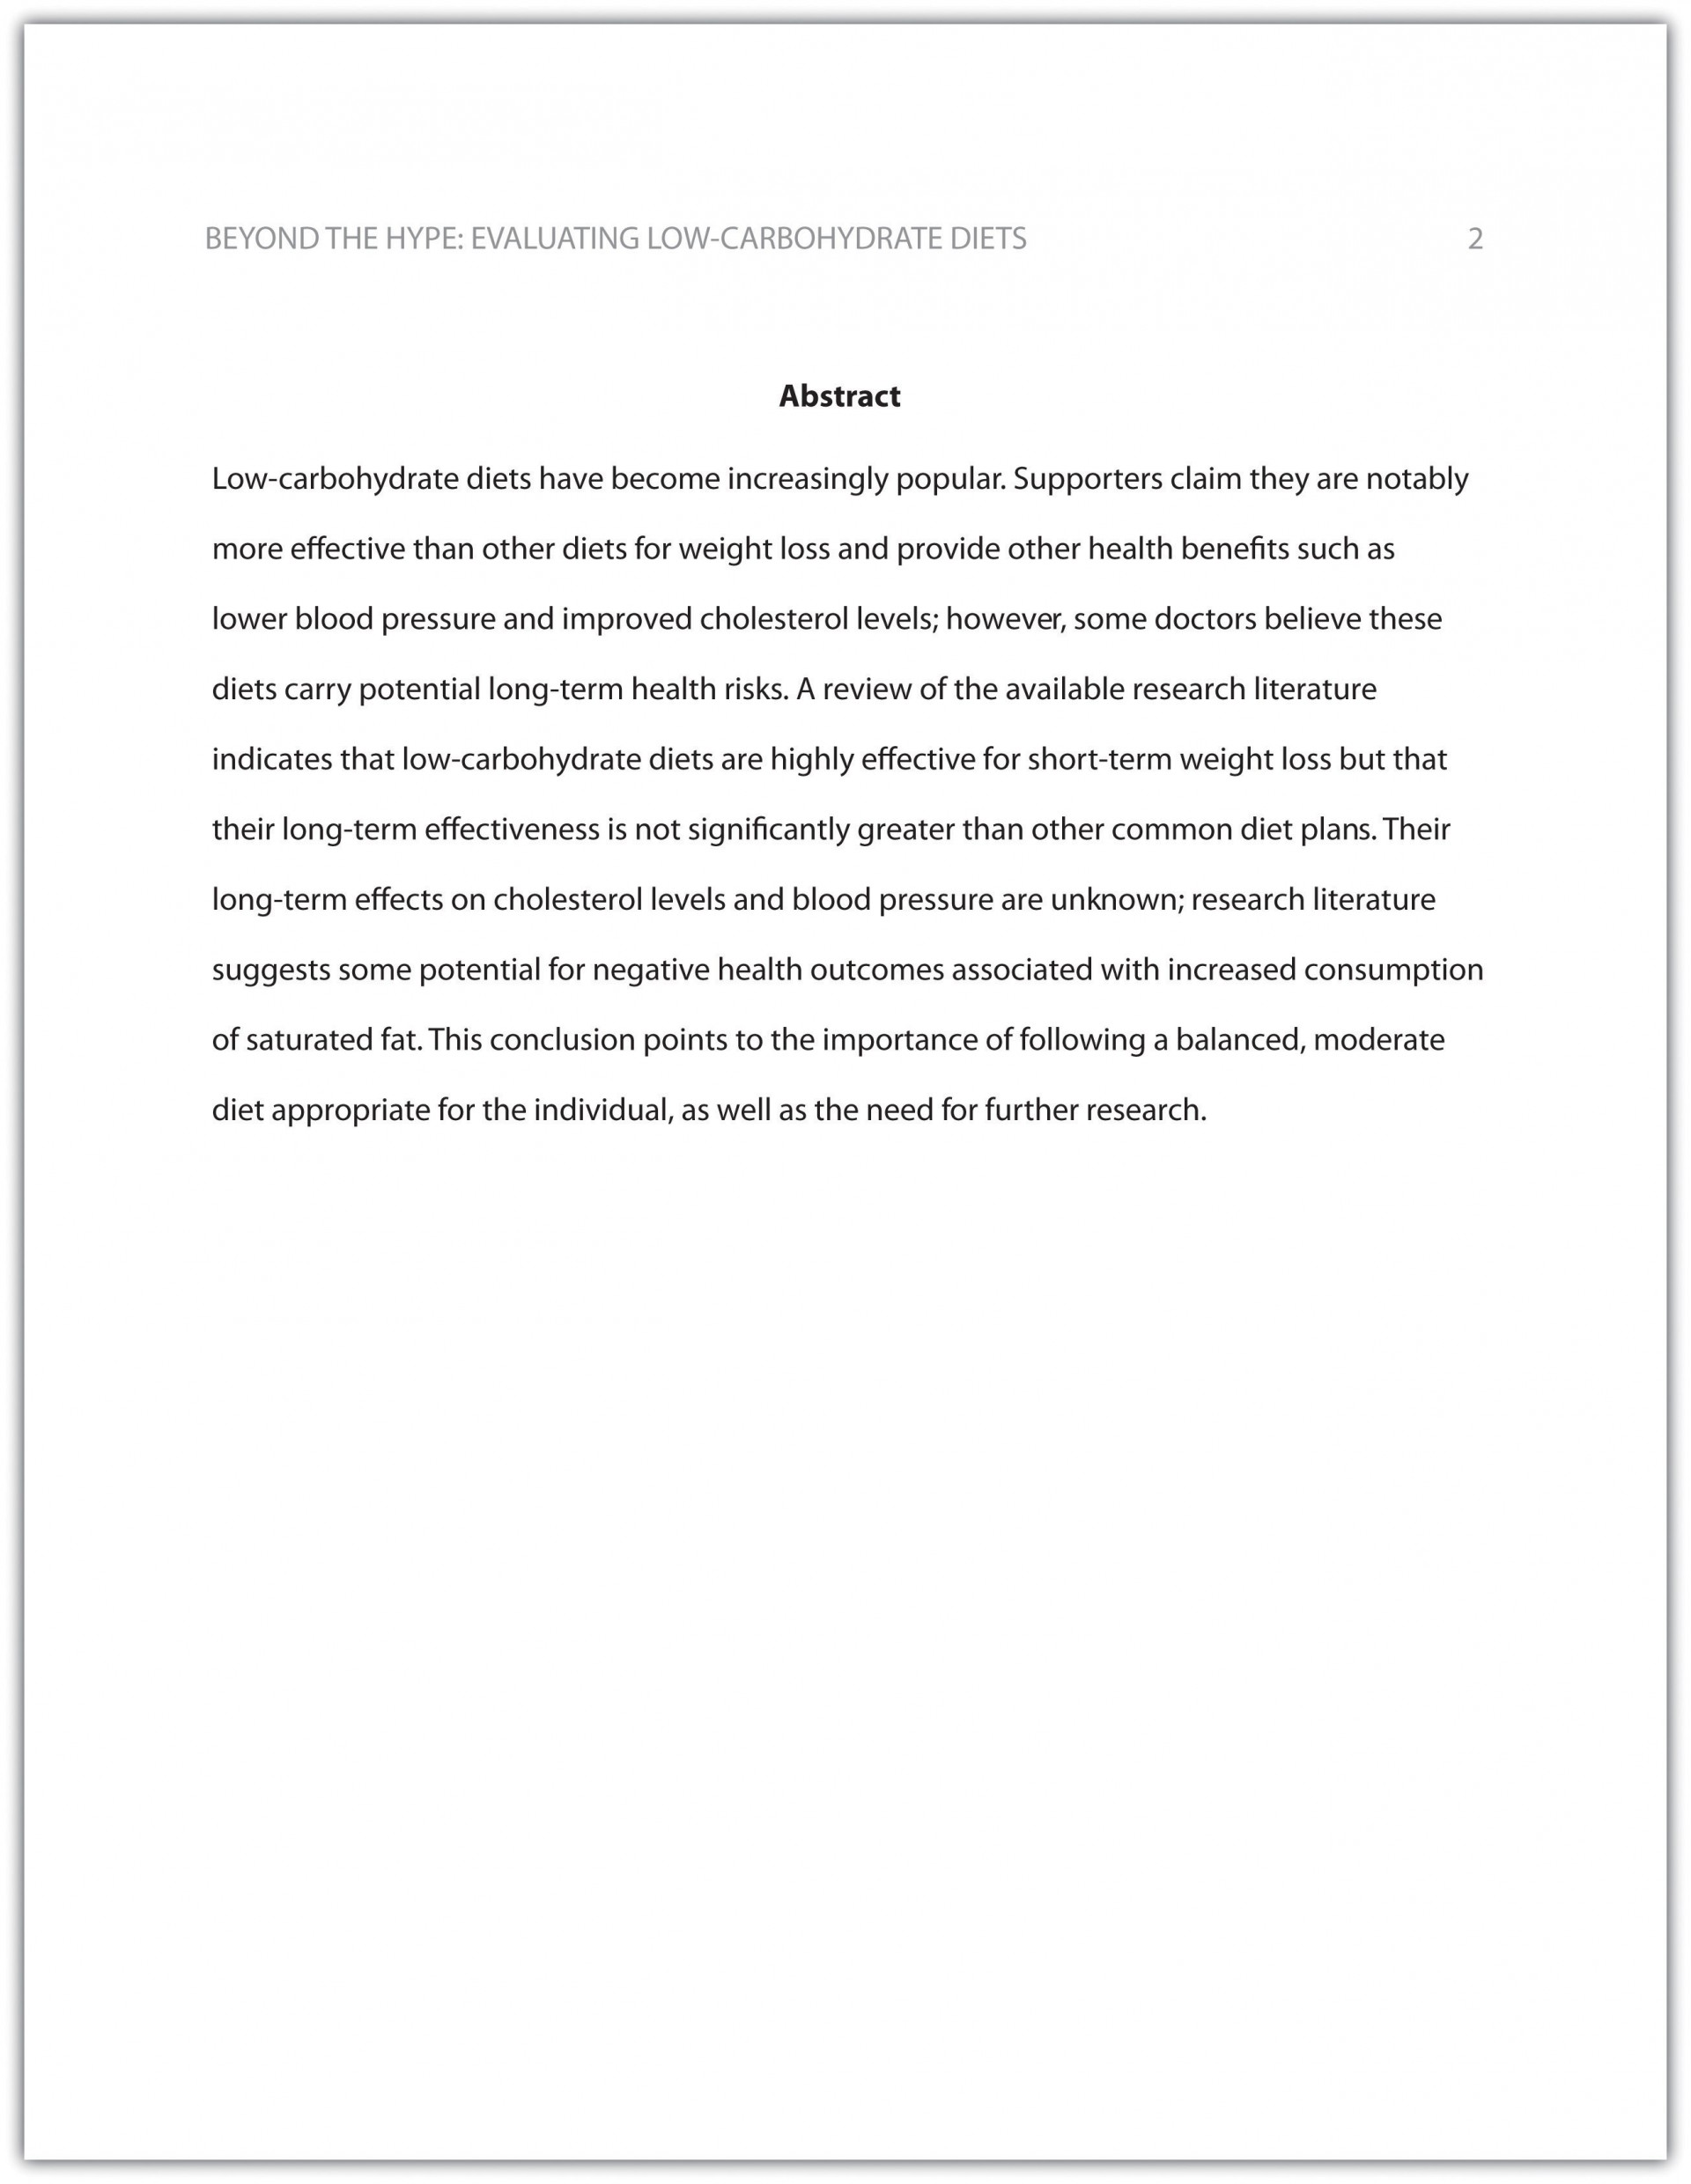 009 Research Paper Mla Formatting Wondrous Instructions 1920